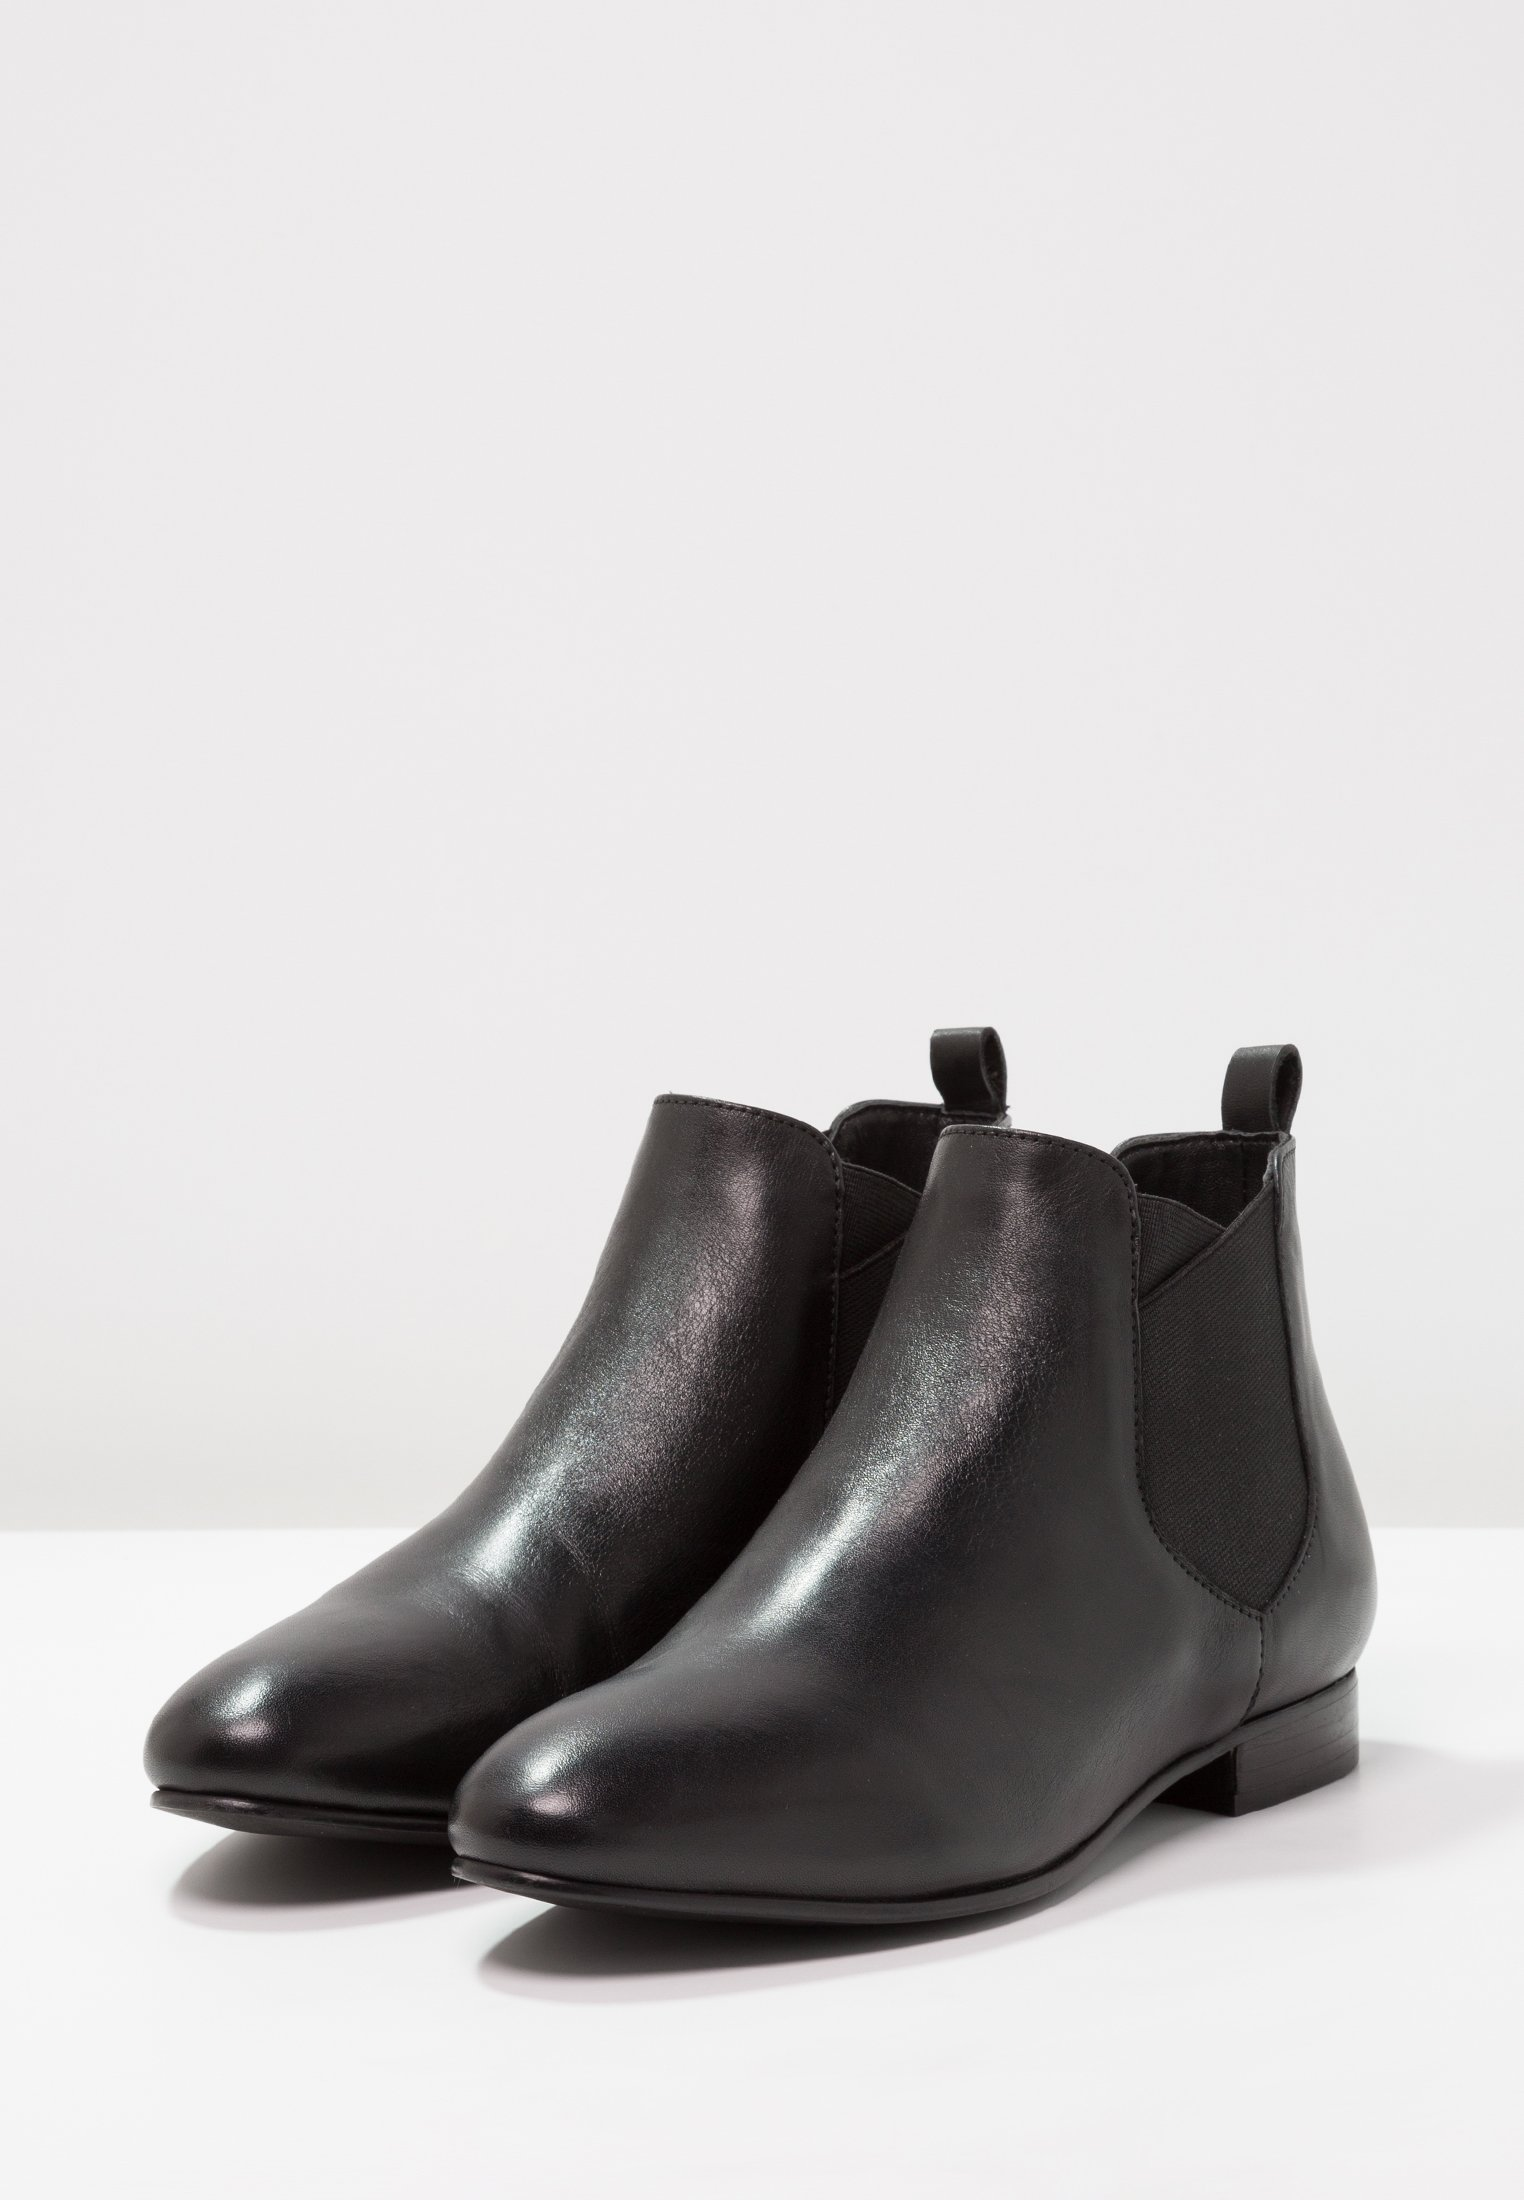 Latest Cheapest Anna Field LEATHER CHELSEAS - Ankle boots - black | women's shoes 2020 qzmsY